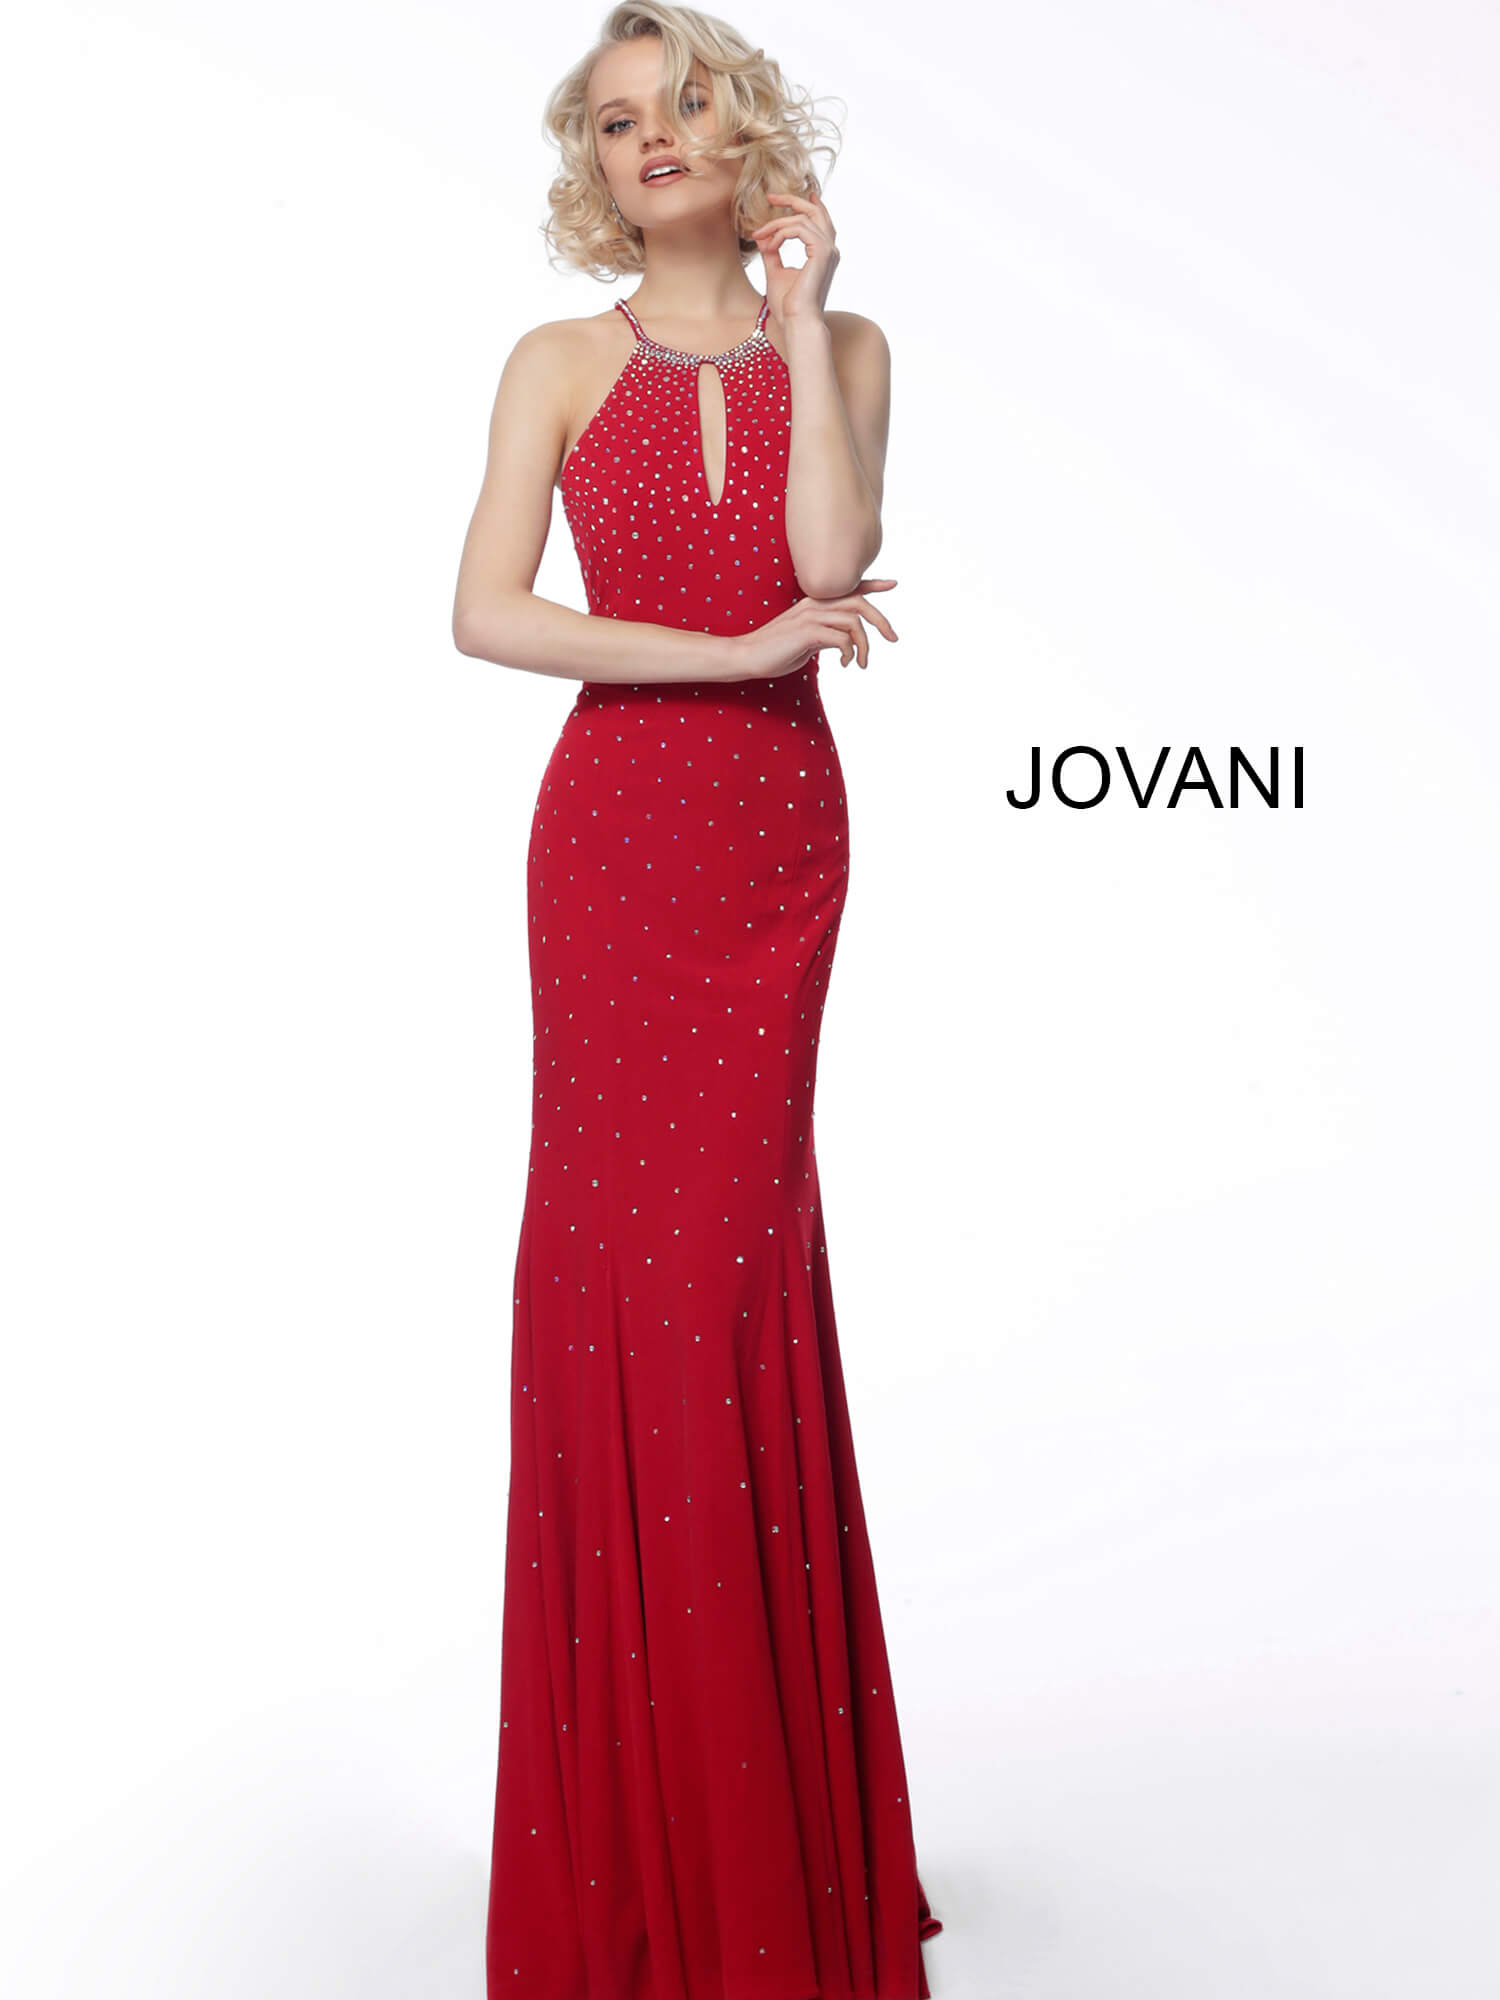 Red key hole neck prom dress Jovani 67101 on mobile 4